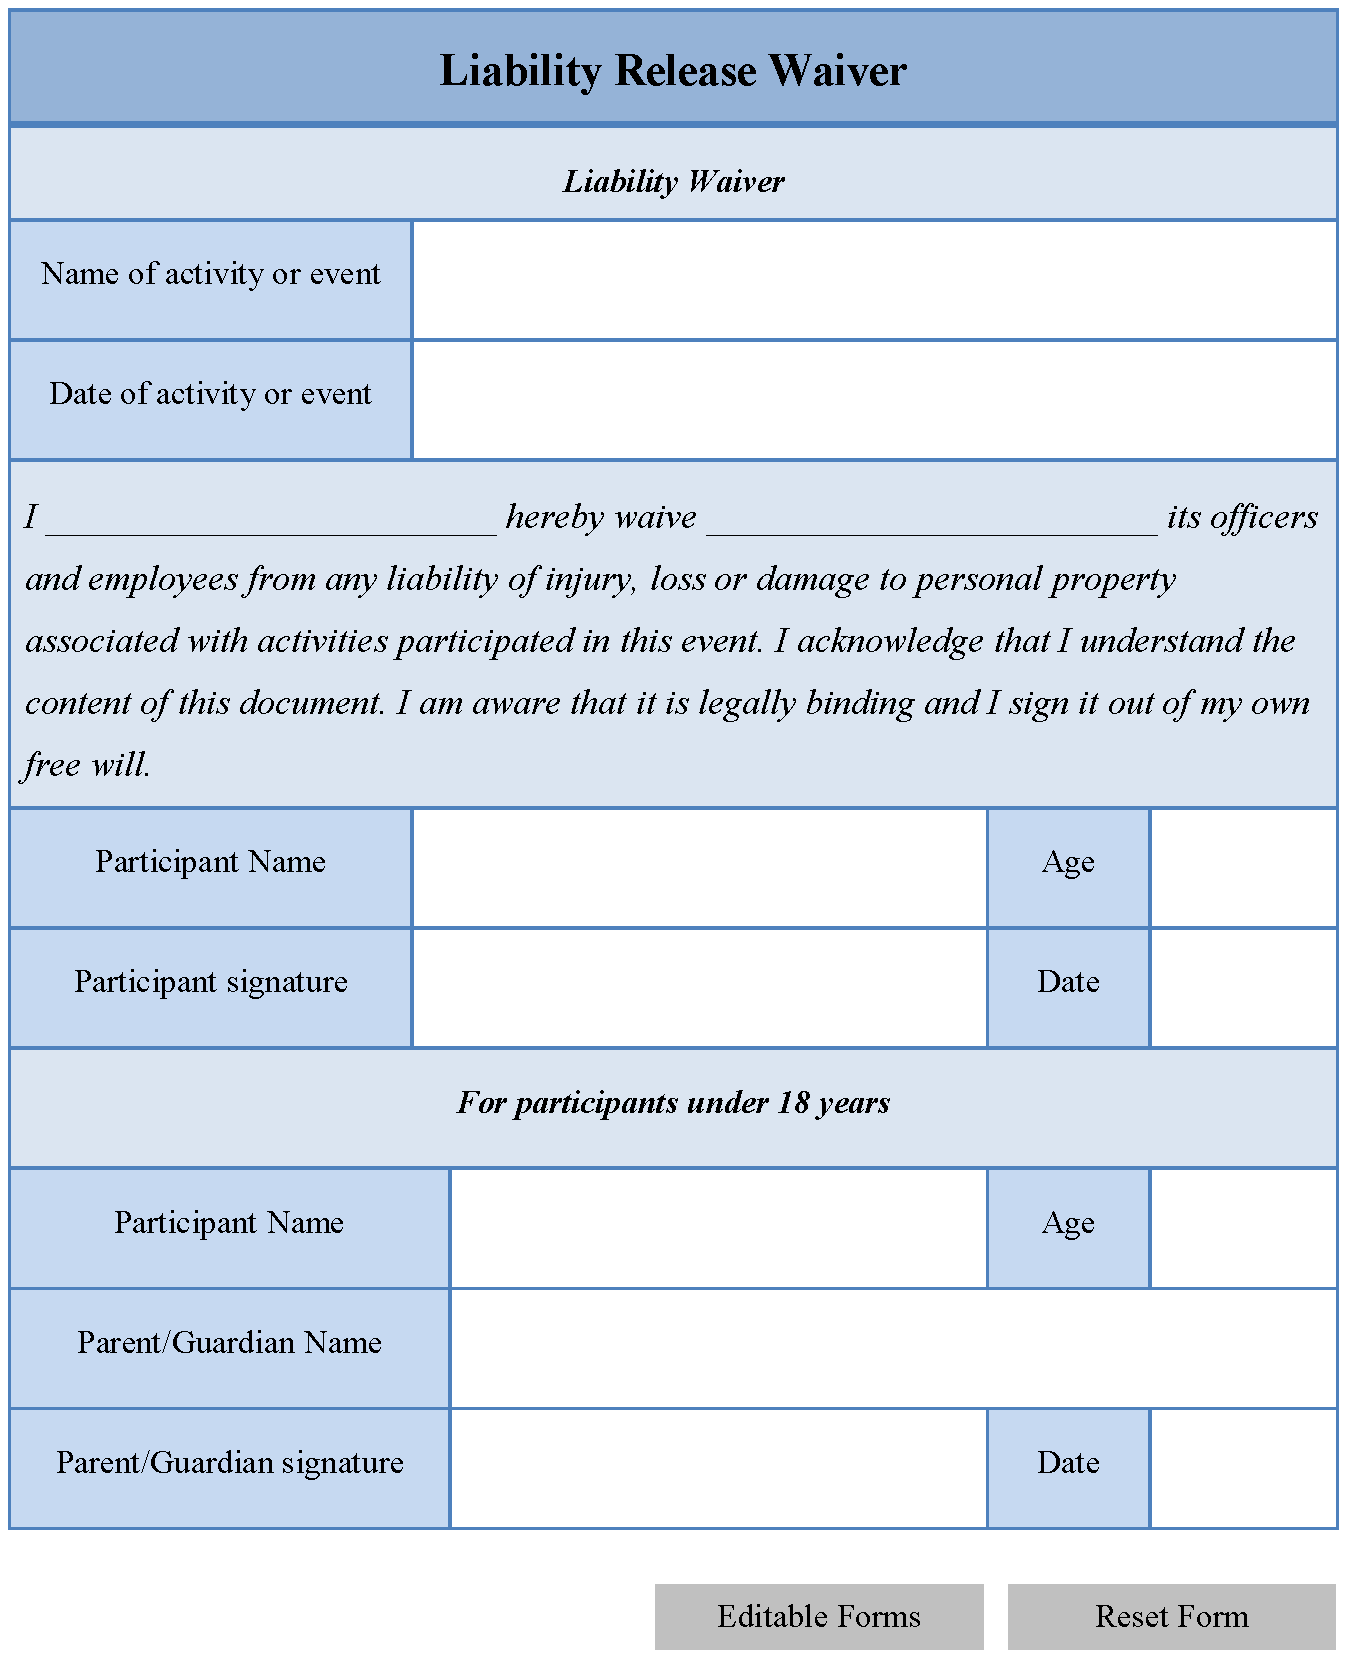 Medical Billing forms Templates and Editable forms